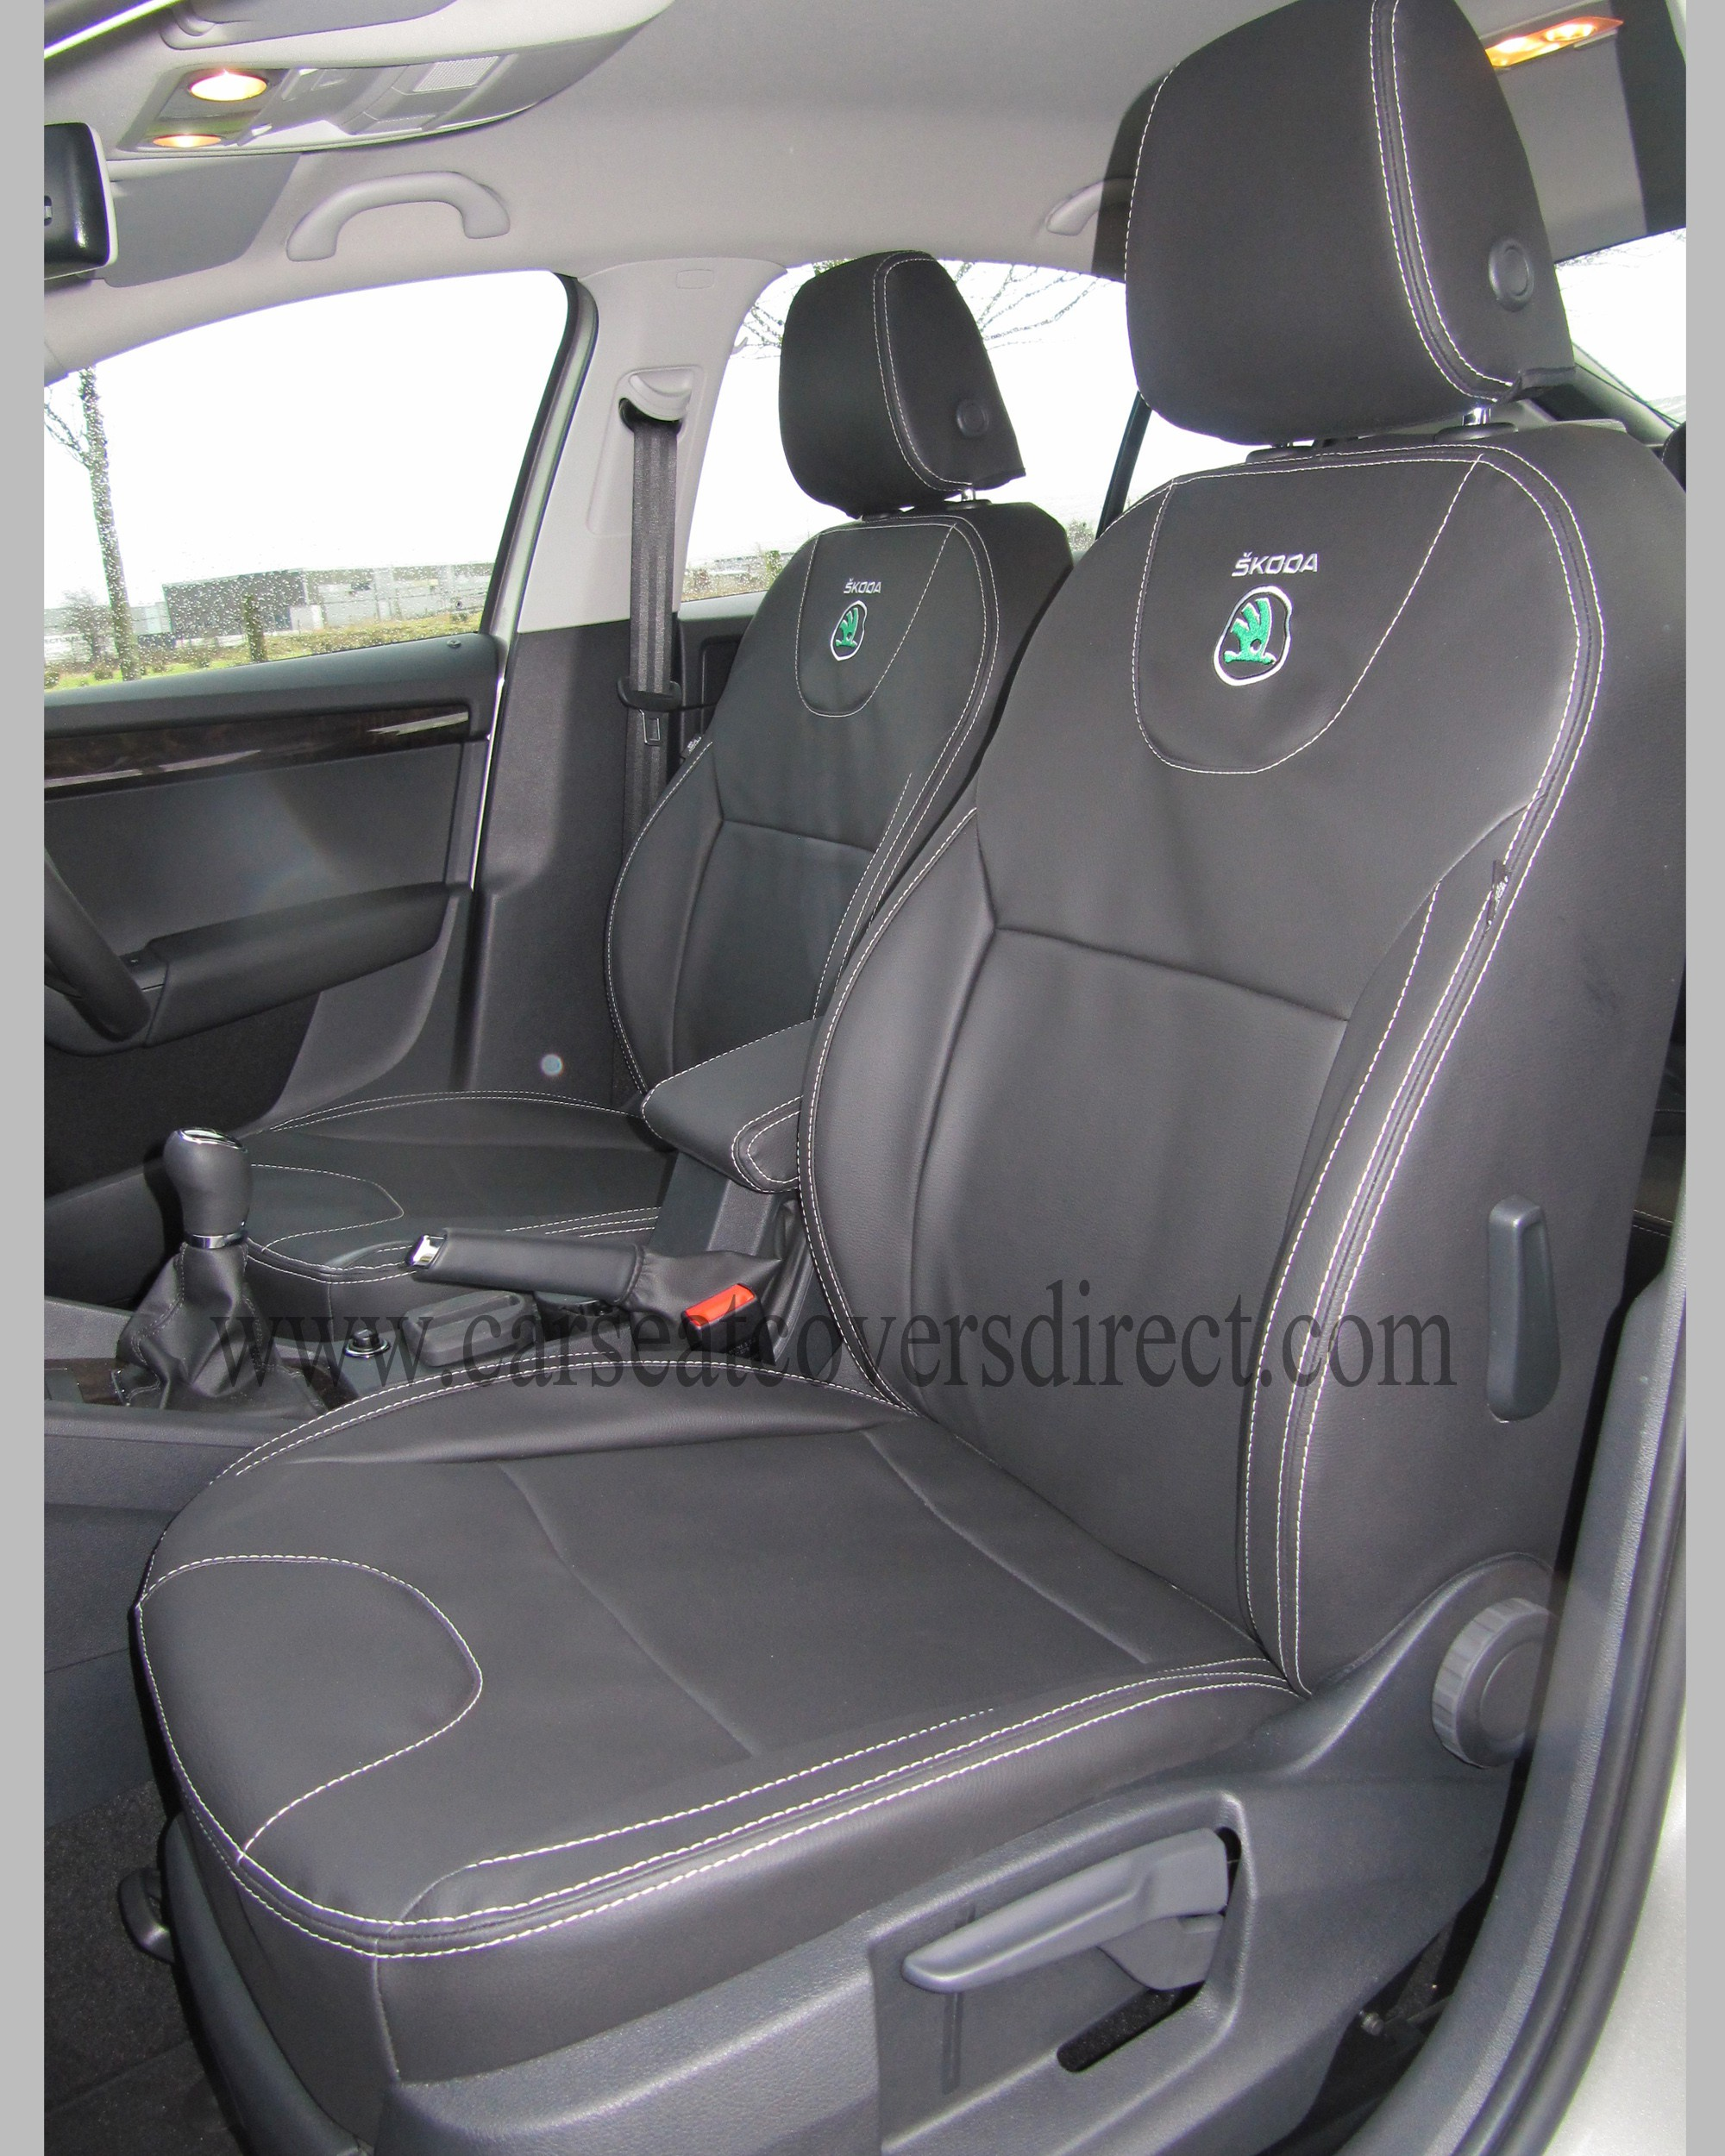 SKODA OCTAVIA 3RD GEN Black Seat Covers